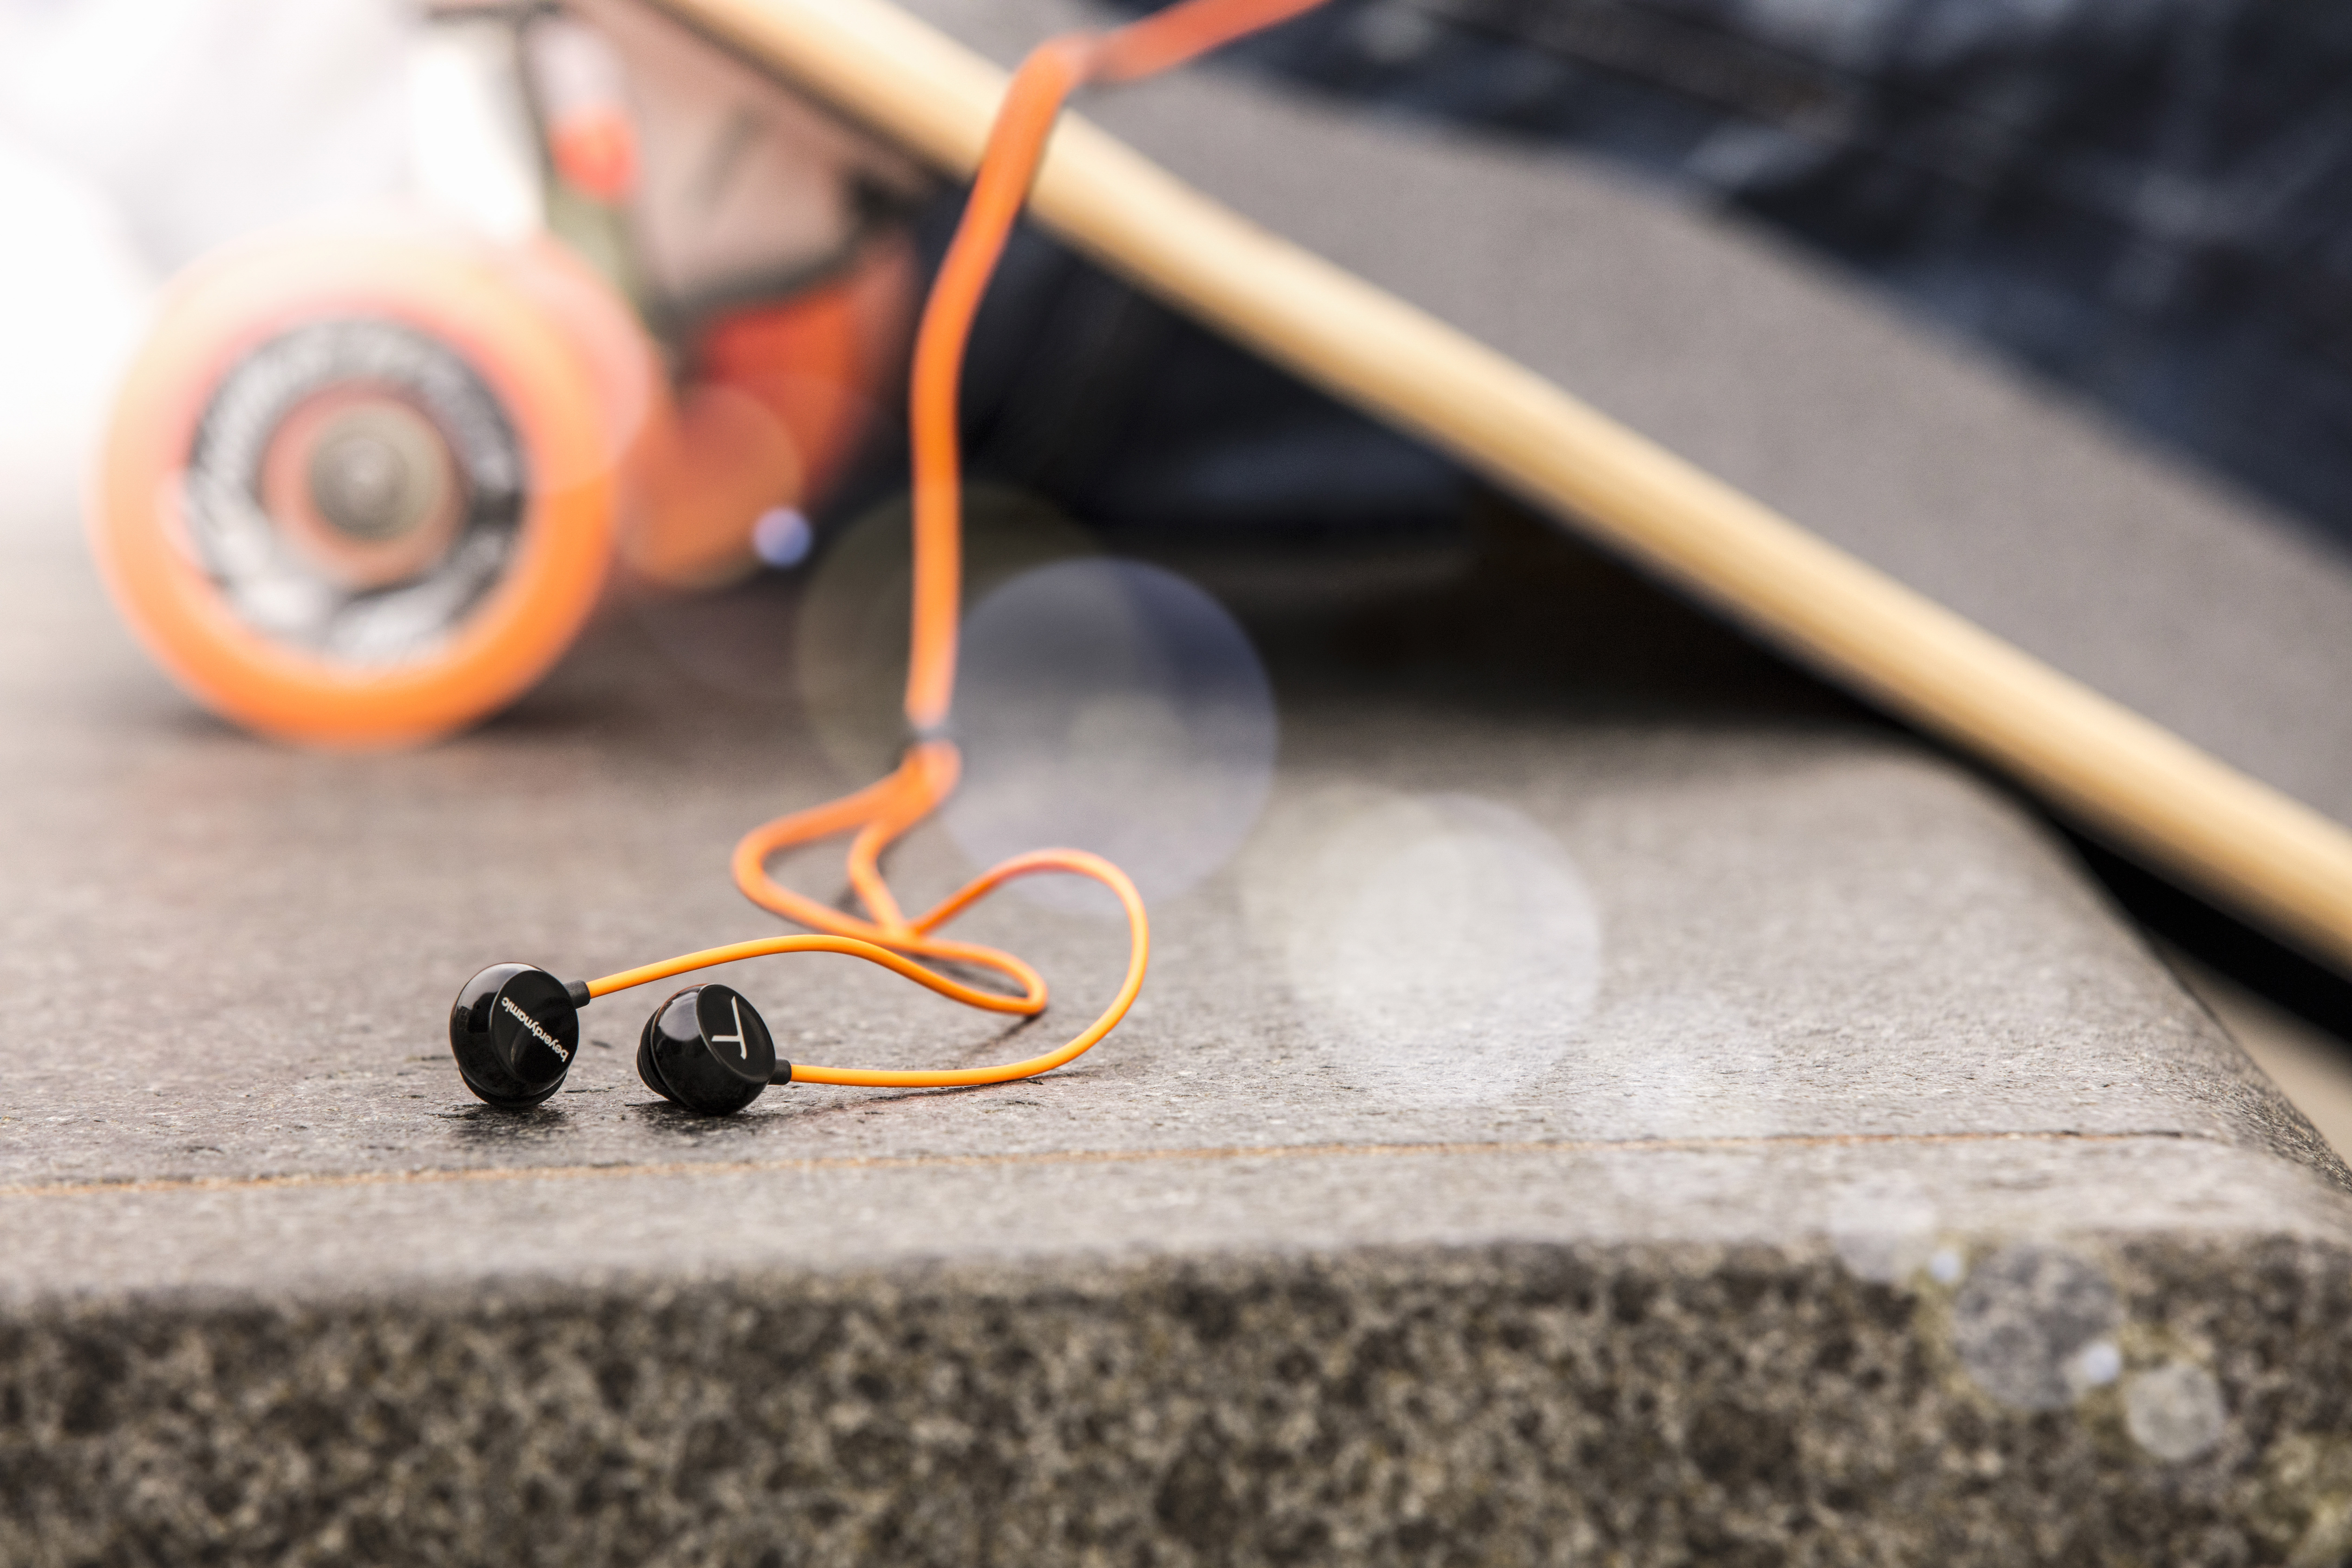 beyerdynamic in-ear Beat BYRD now available: Welcome to